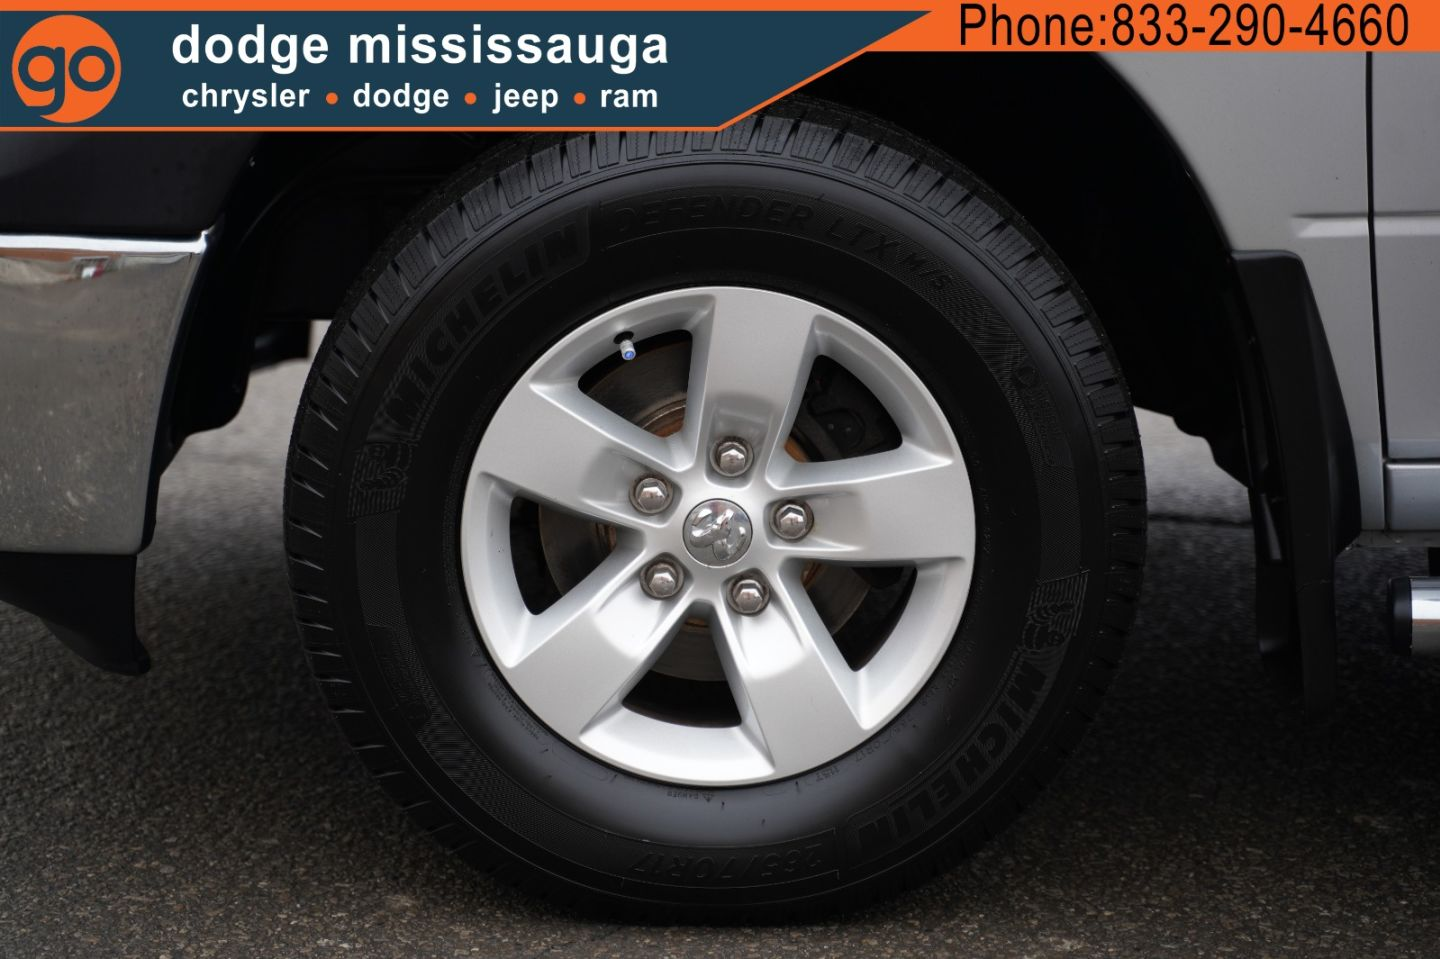 2014 Ram 1500 ST for sale in Mississauga, Ontario